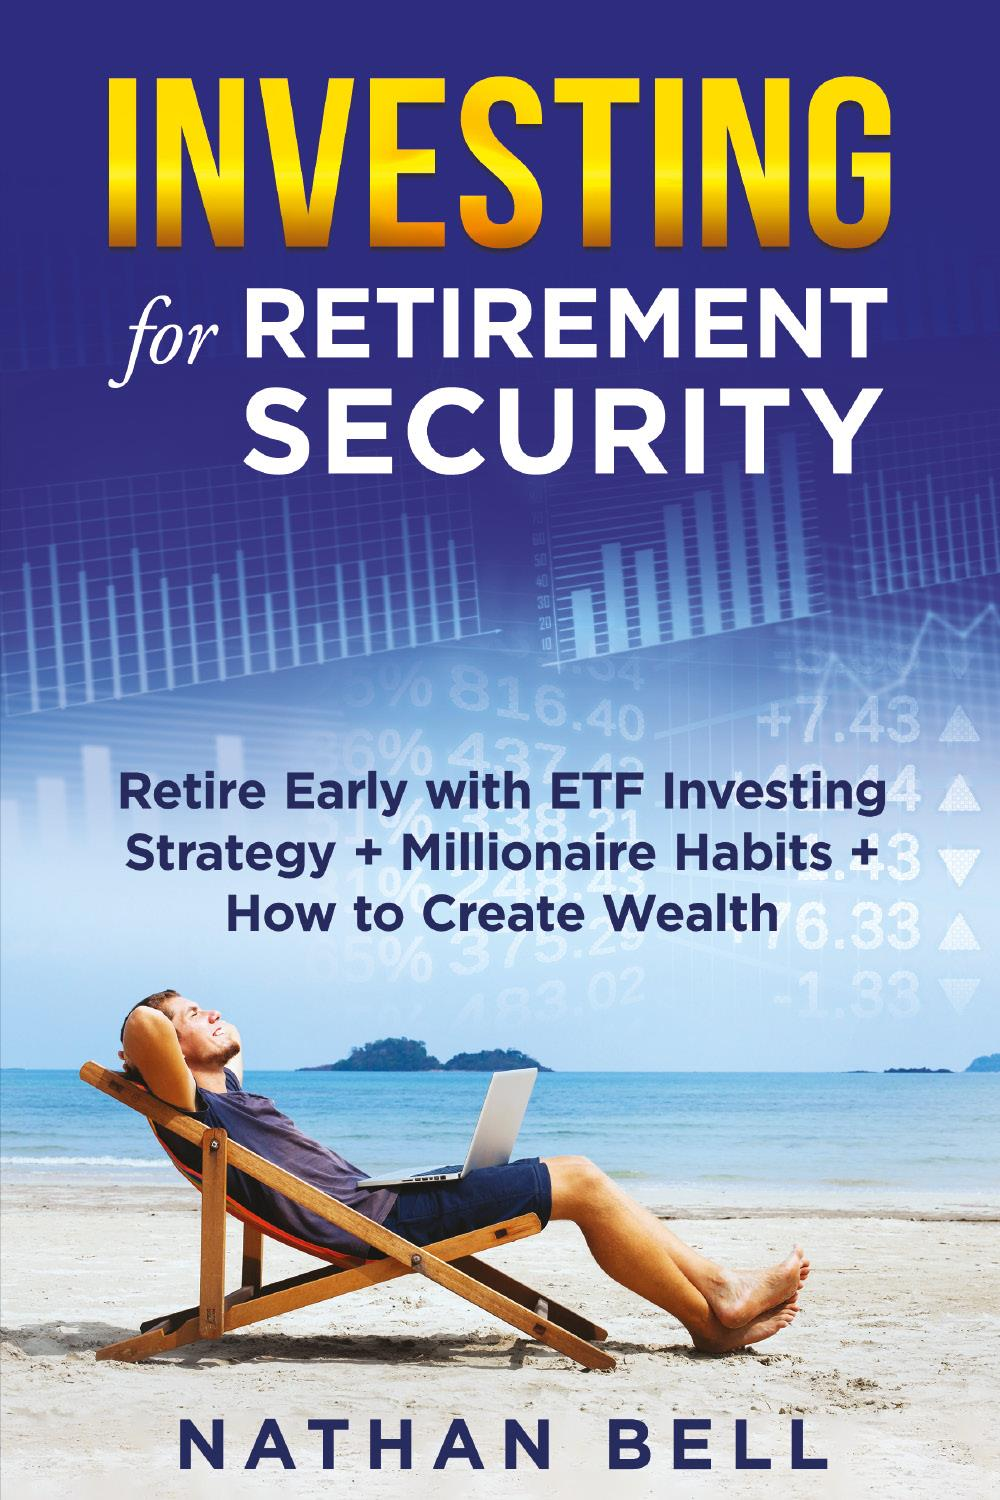 Investing for Retirement Security